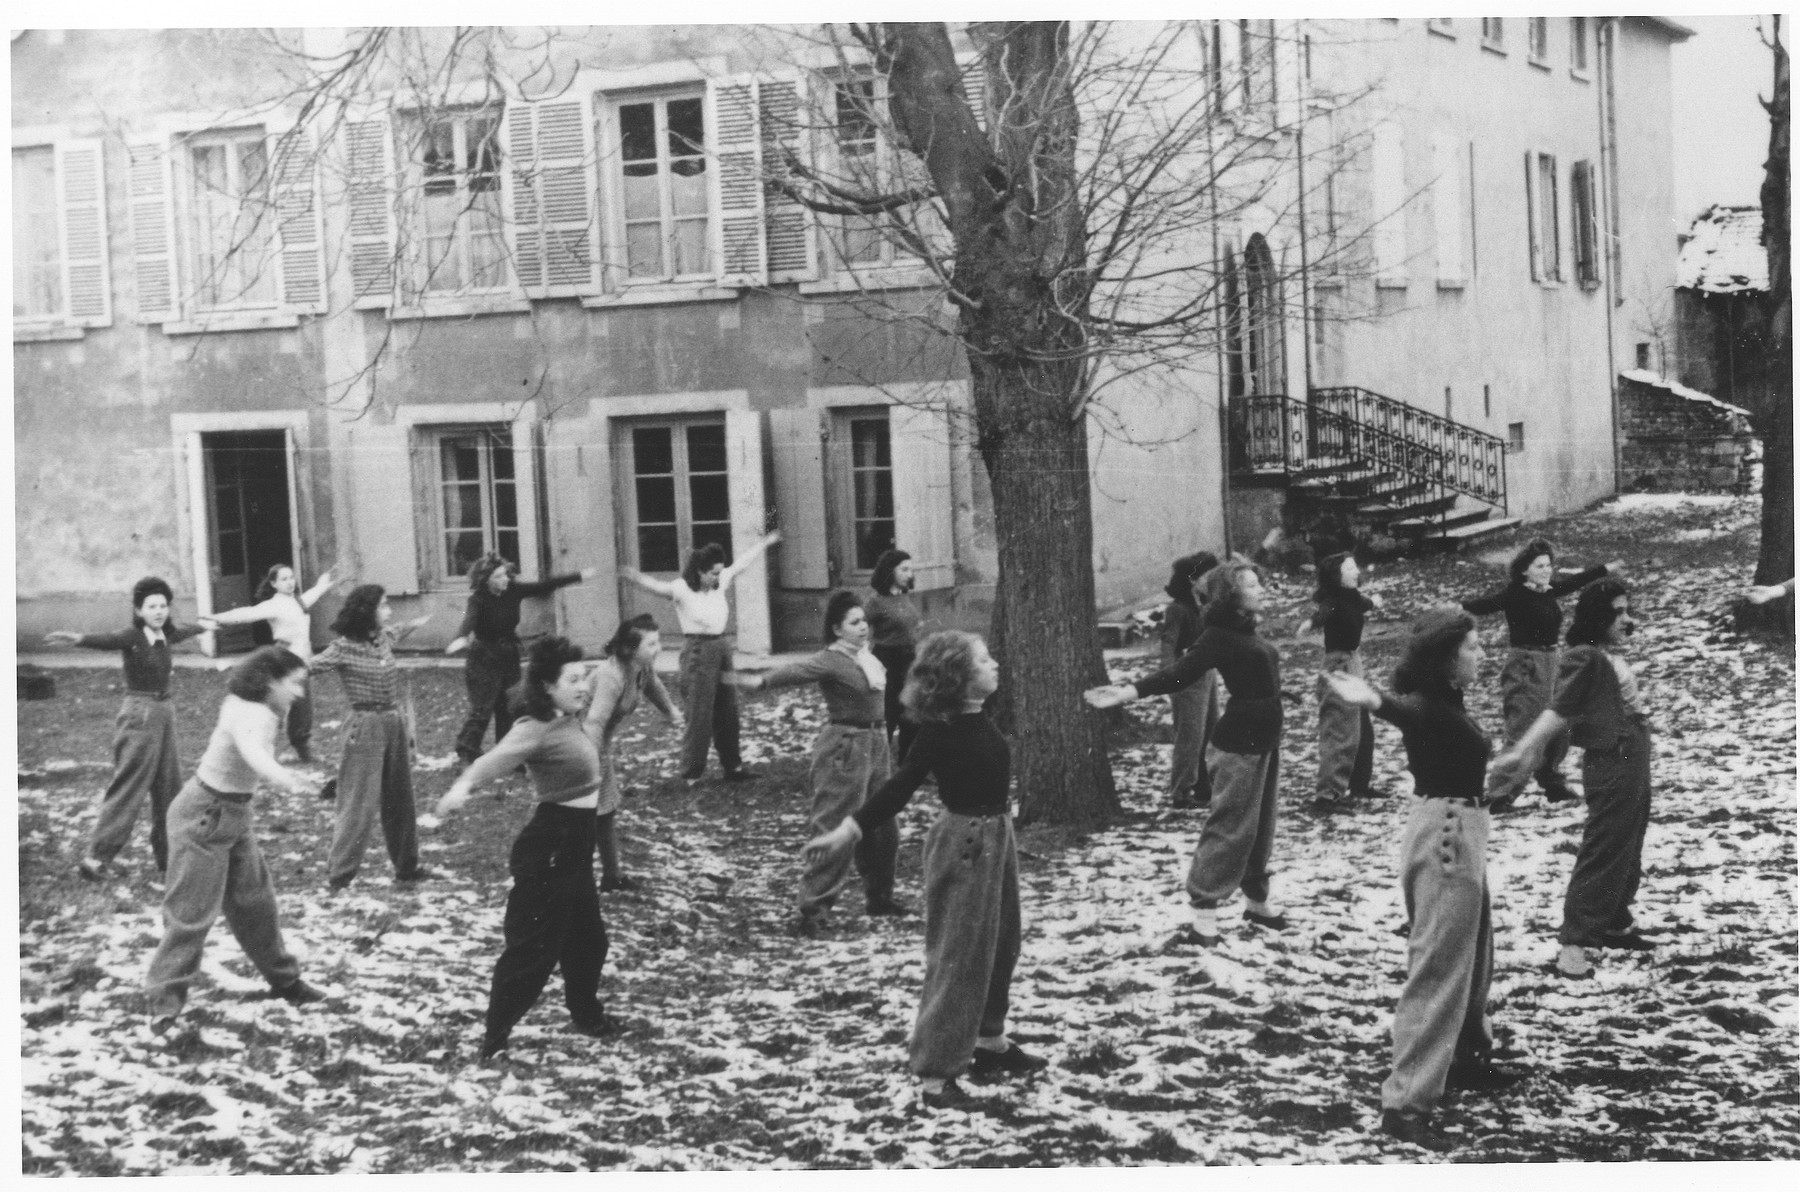 Girls exercise in the courtyard of the St. Germain children's home.